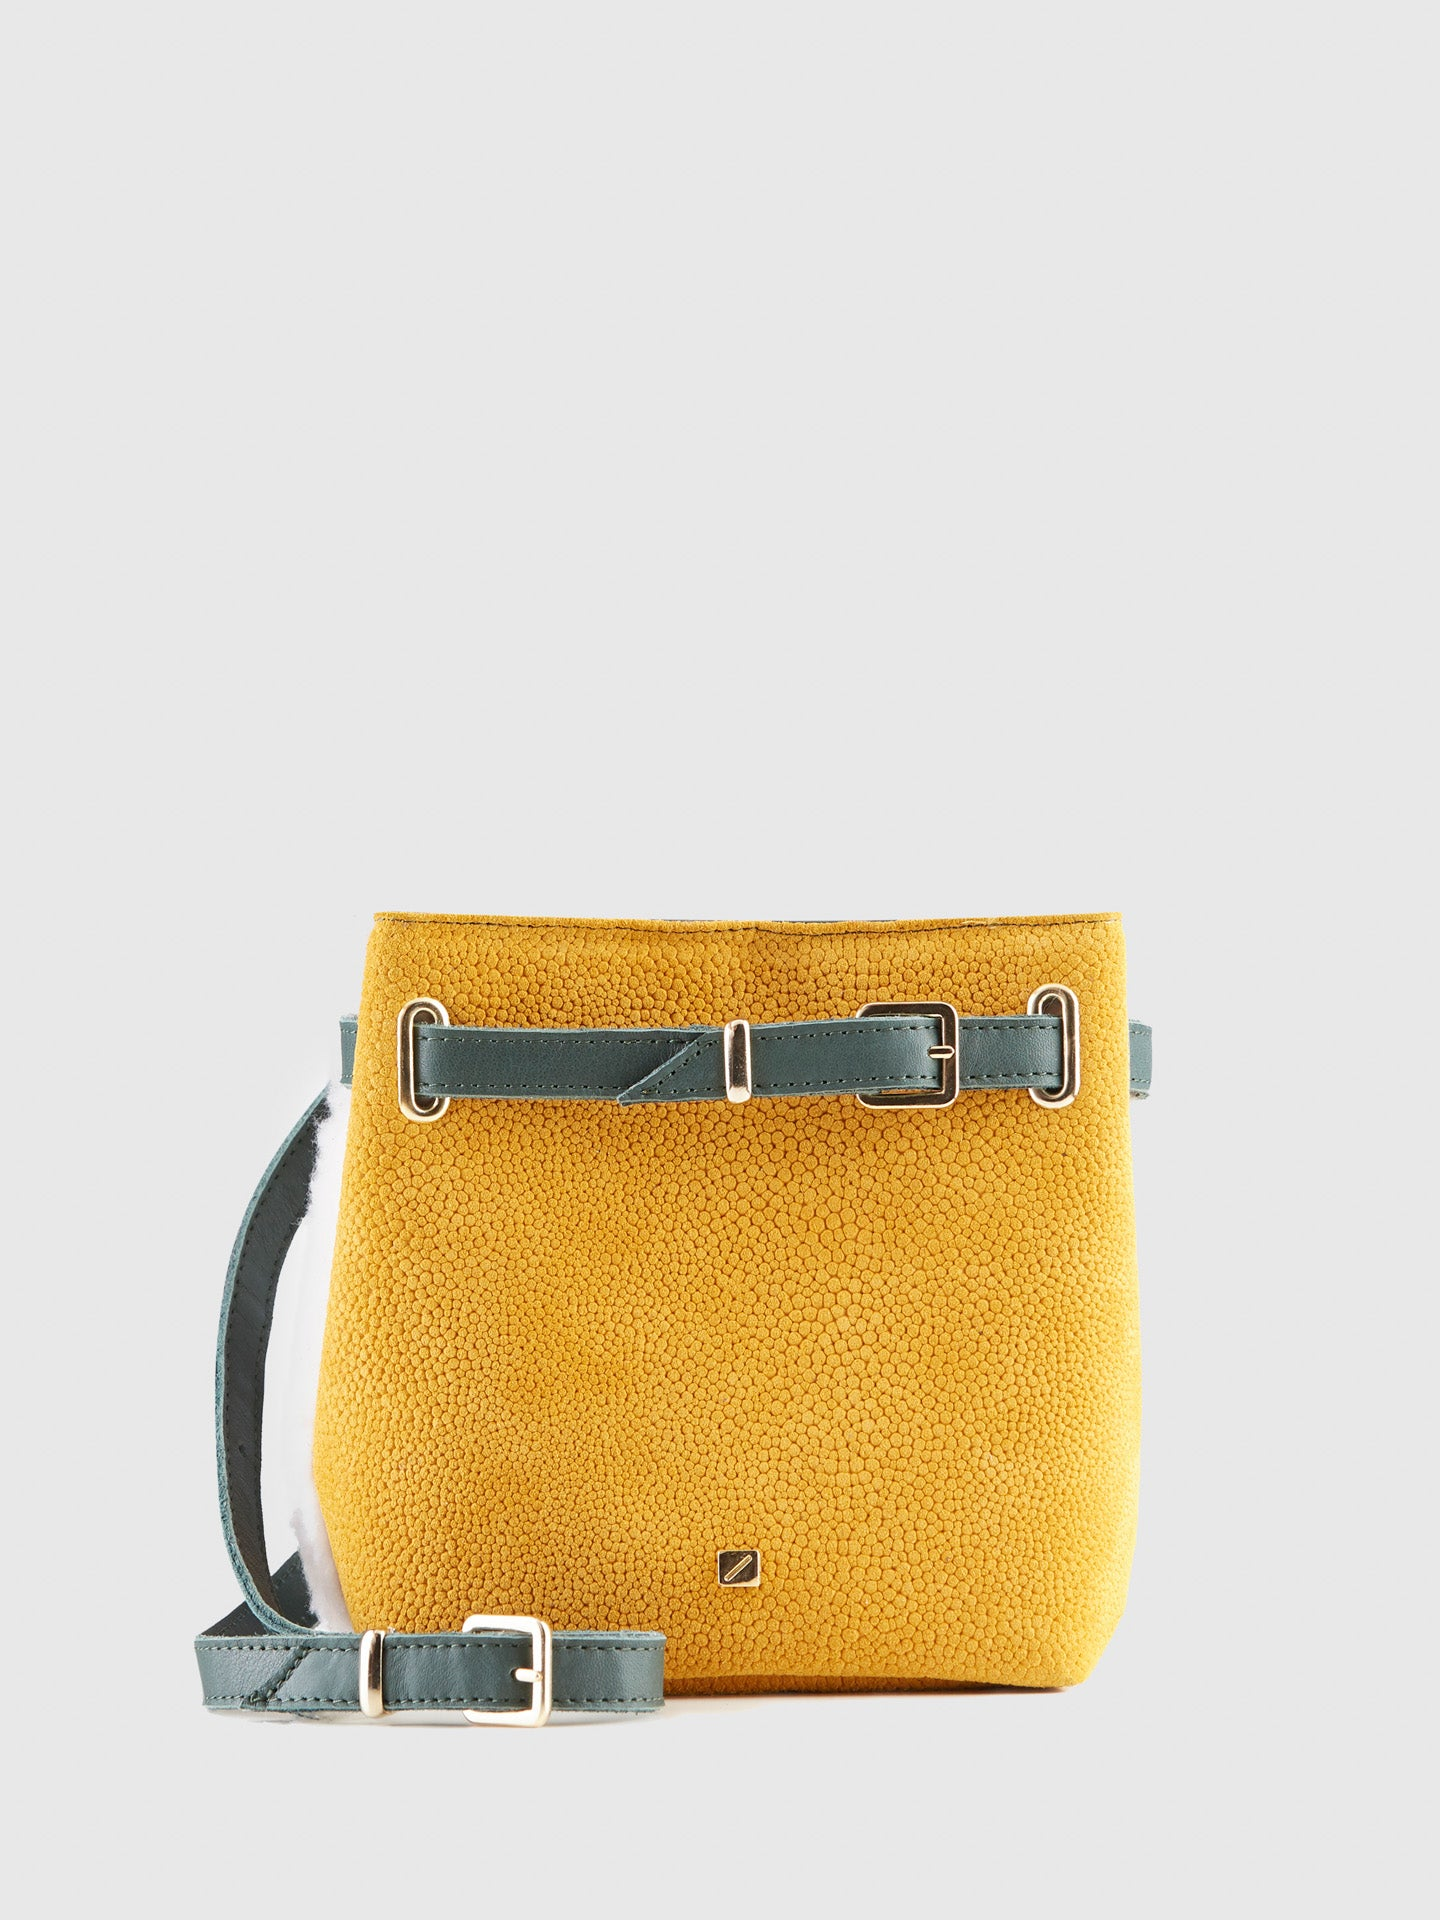 Maria Maleta Yellow and White Reversible Bumbag Bag